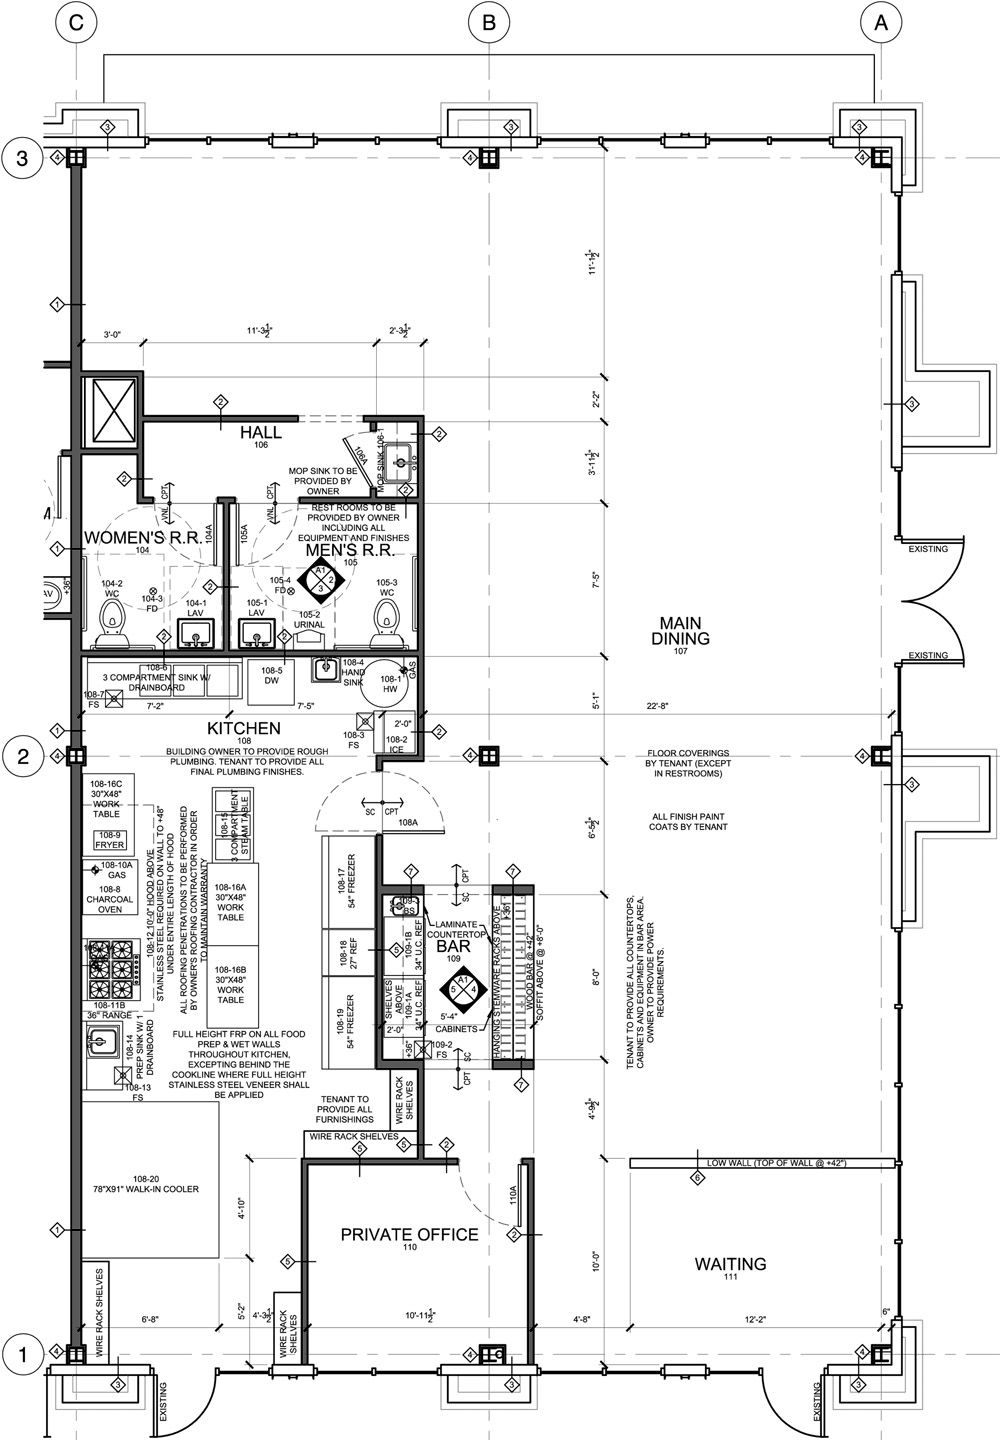 designing a restaurant floor plan | home design and decor reviews